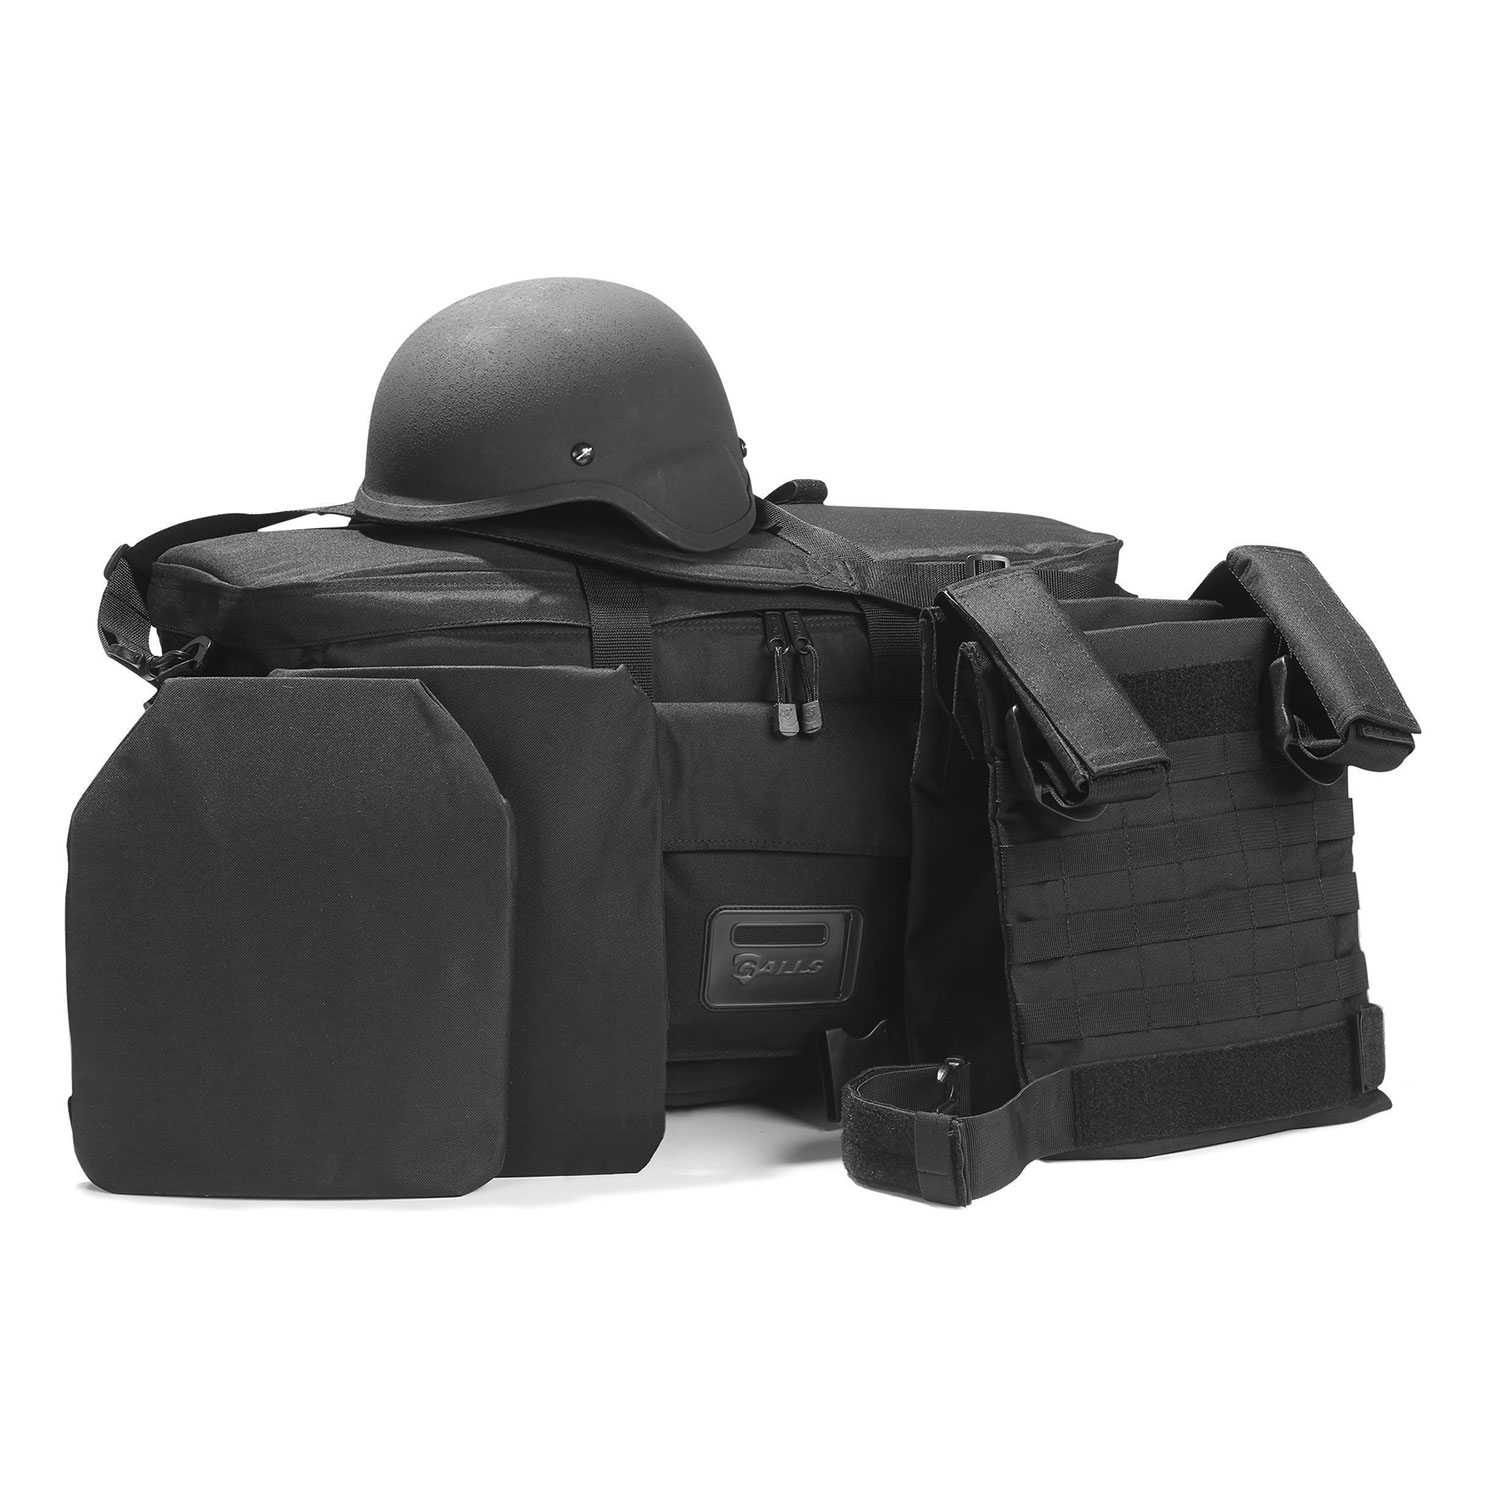 Galls Active Shooter Armor Kit